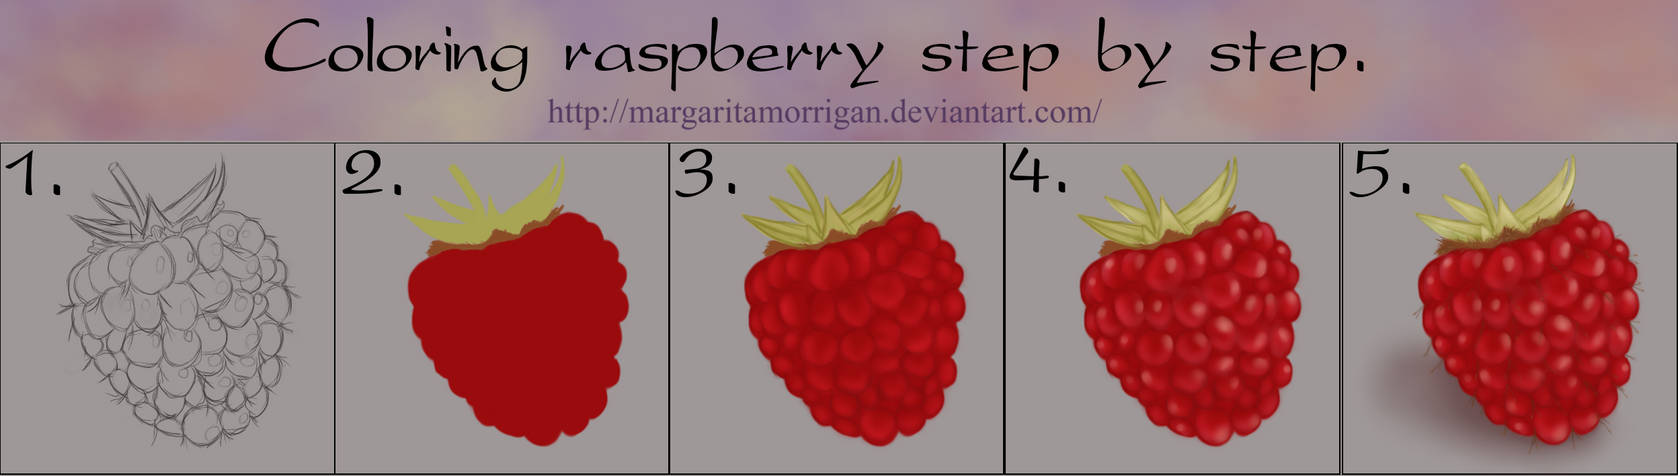 Coloring raspberry step by step